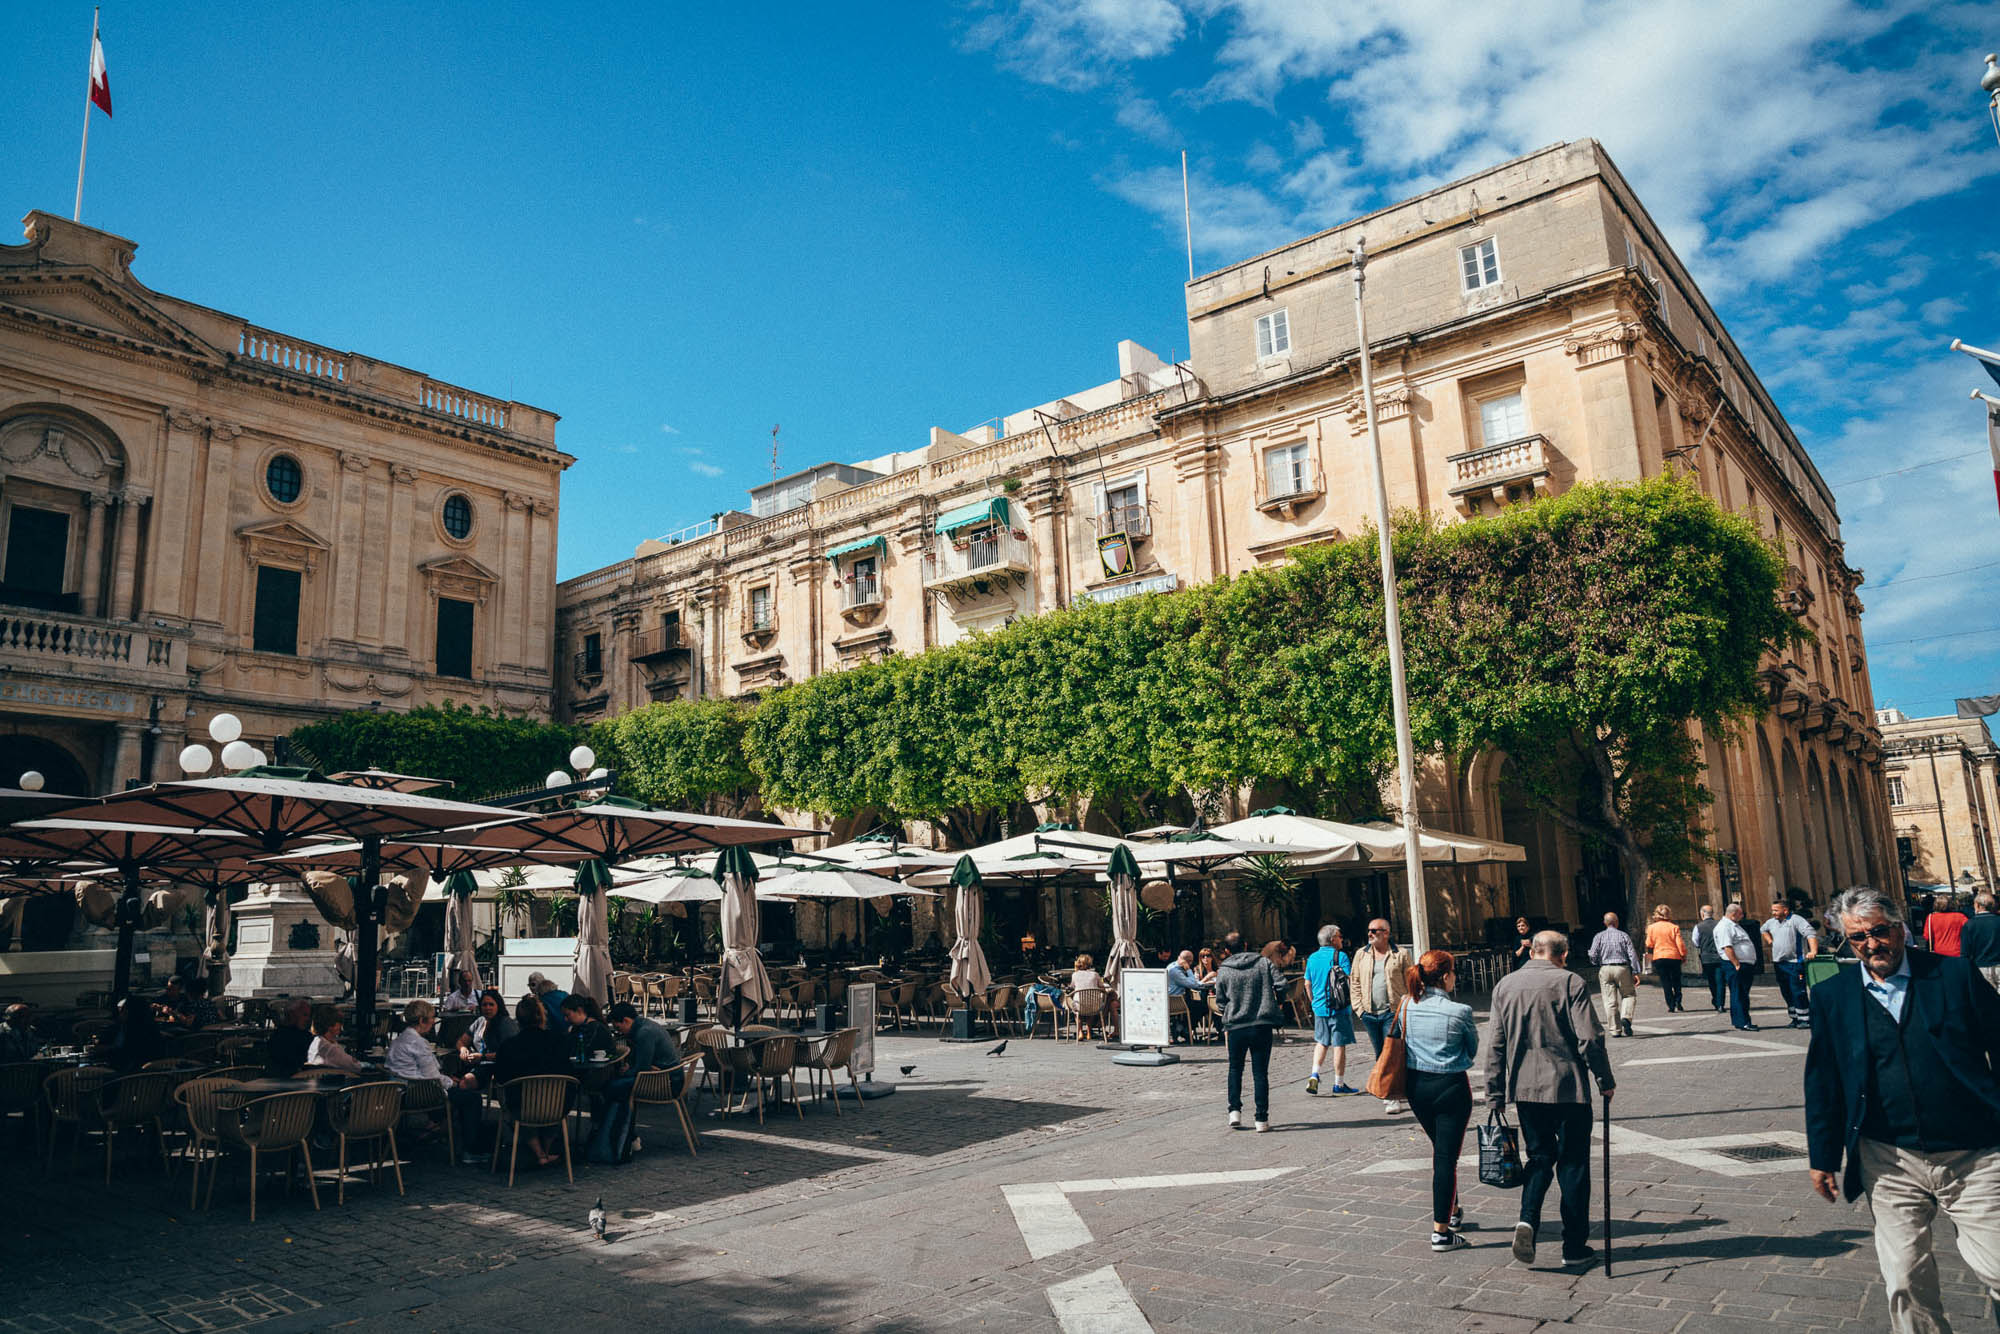 Republic Square is located in the city center of capital of Malta - Valletta.